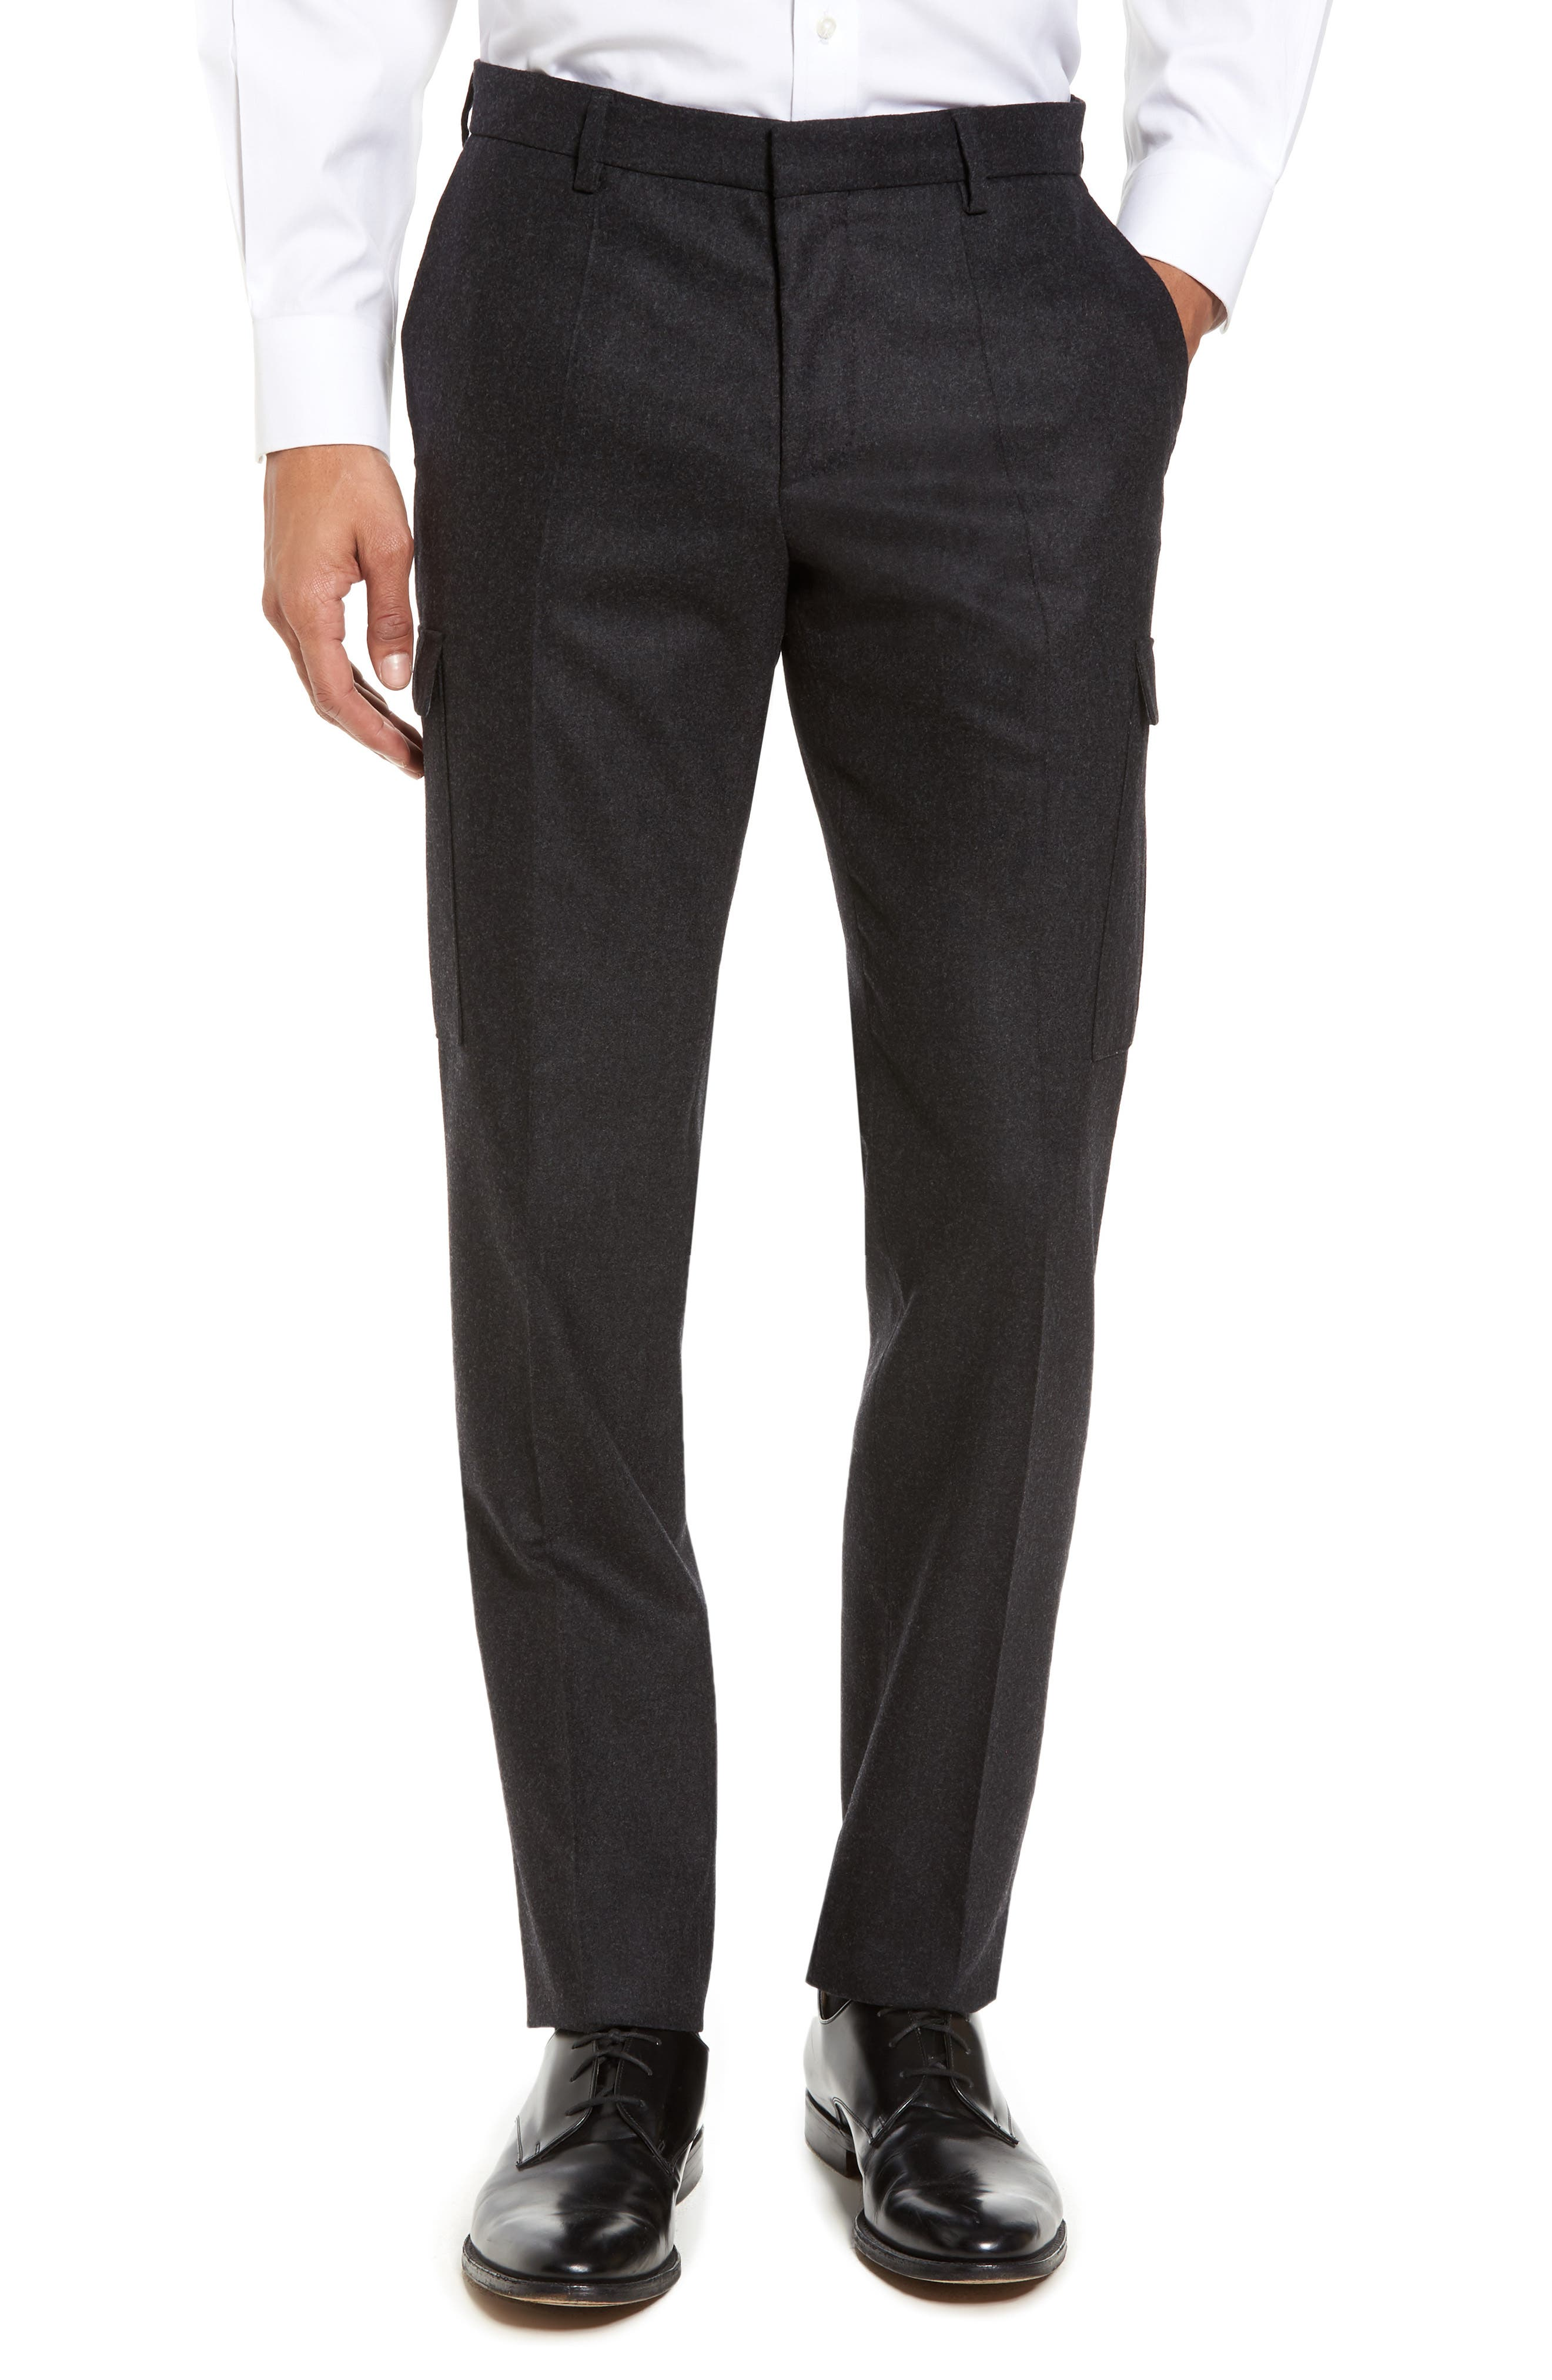 Balour Flat Front Stretch Solid Wool & Cashmere Cargo Trousers,                             Main thumbnail 1, color,                             Dark Grey